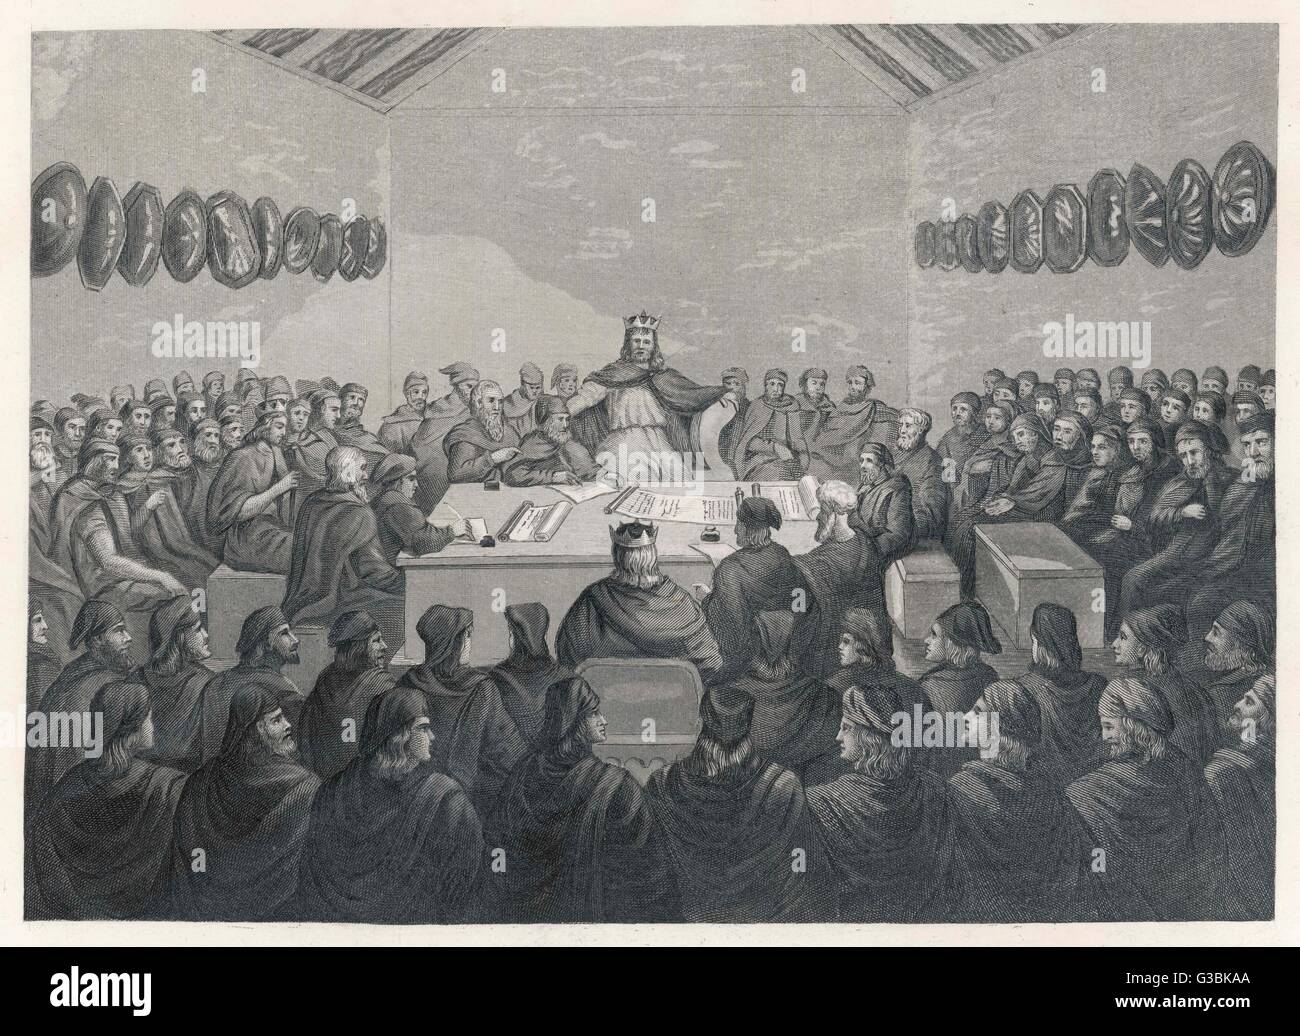 The High Chamber of Tara, the  national assembly of Ireland  in medieval times.       Date: Middle ages Stock Photo